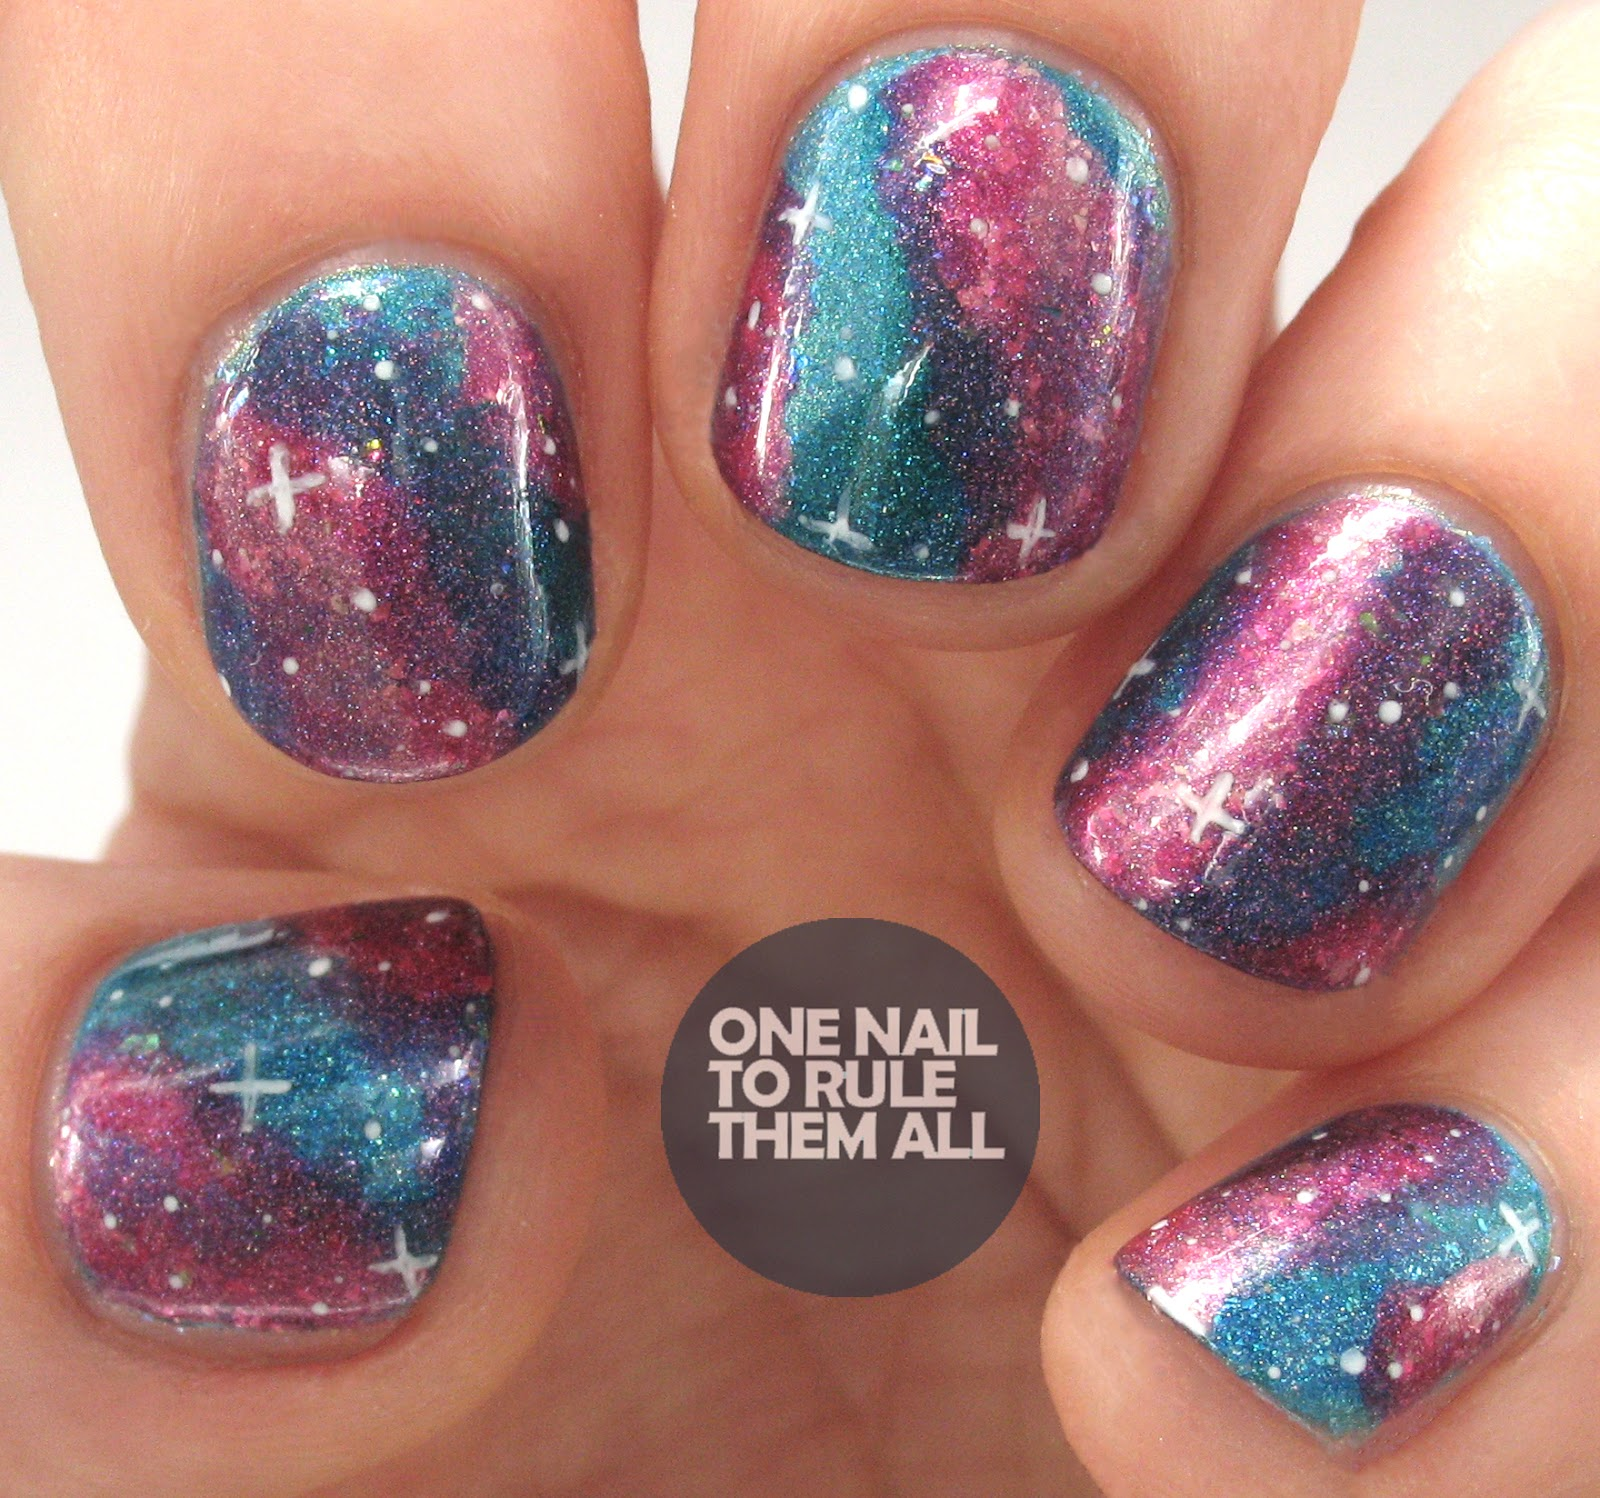 One Nail To Rule Them All: Celestial Cosmetics Galaxy Nail Art